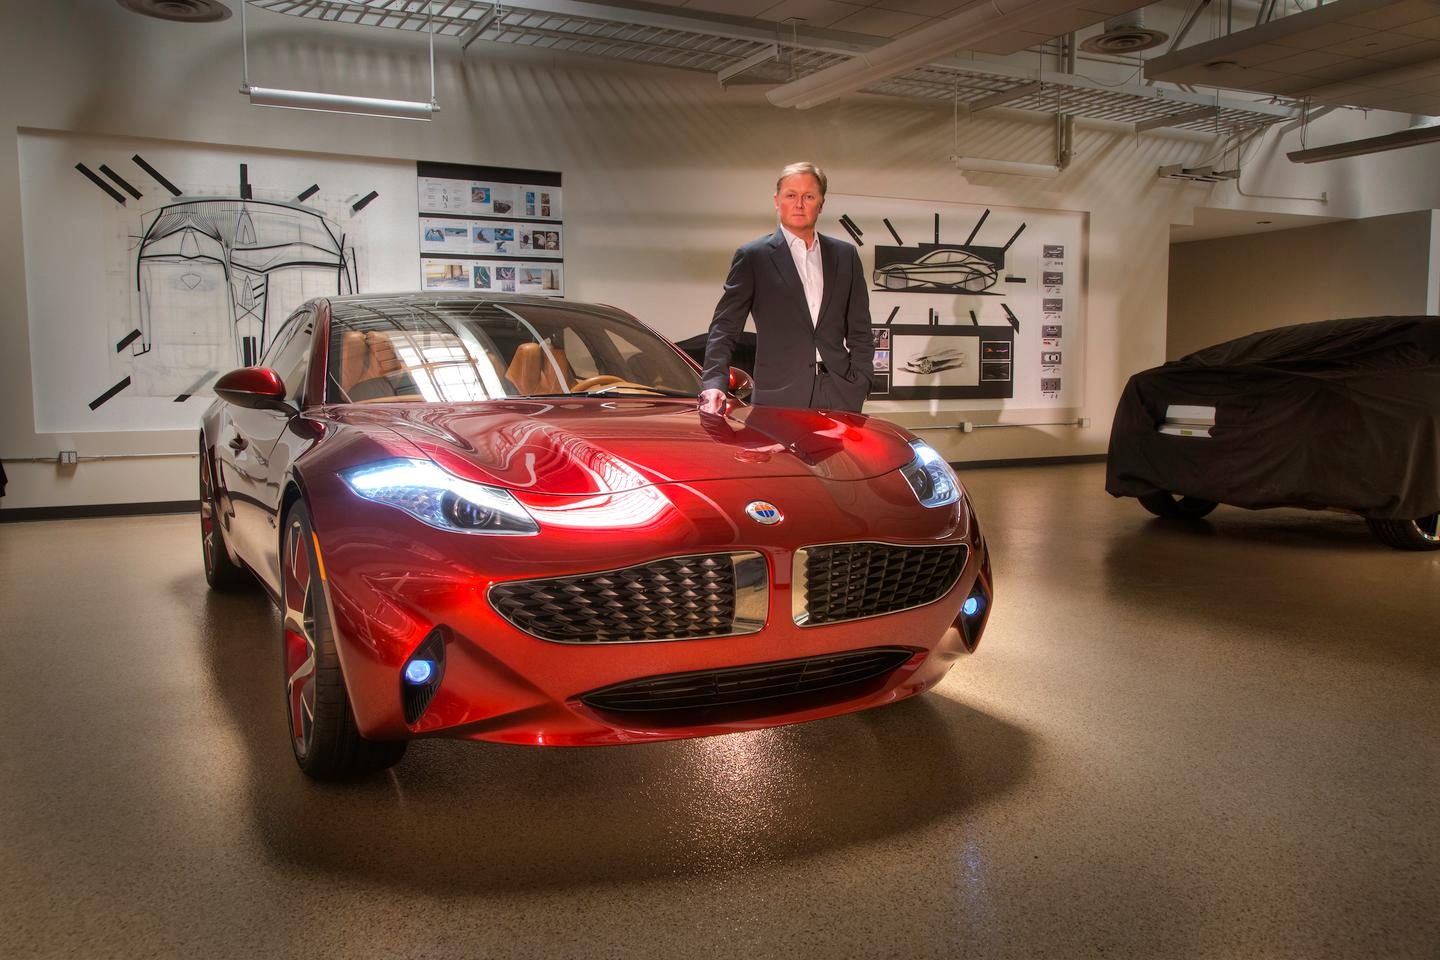 Henrik Fisker with the new Atlantic Design Prototype (Photo: Fisker Automotive)